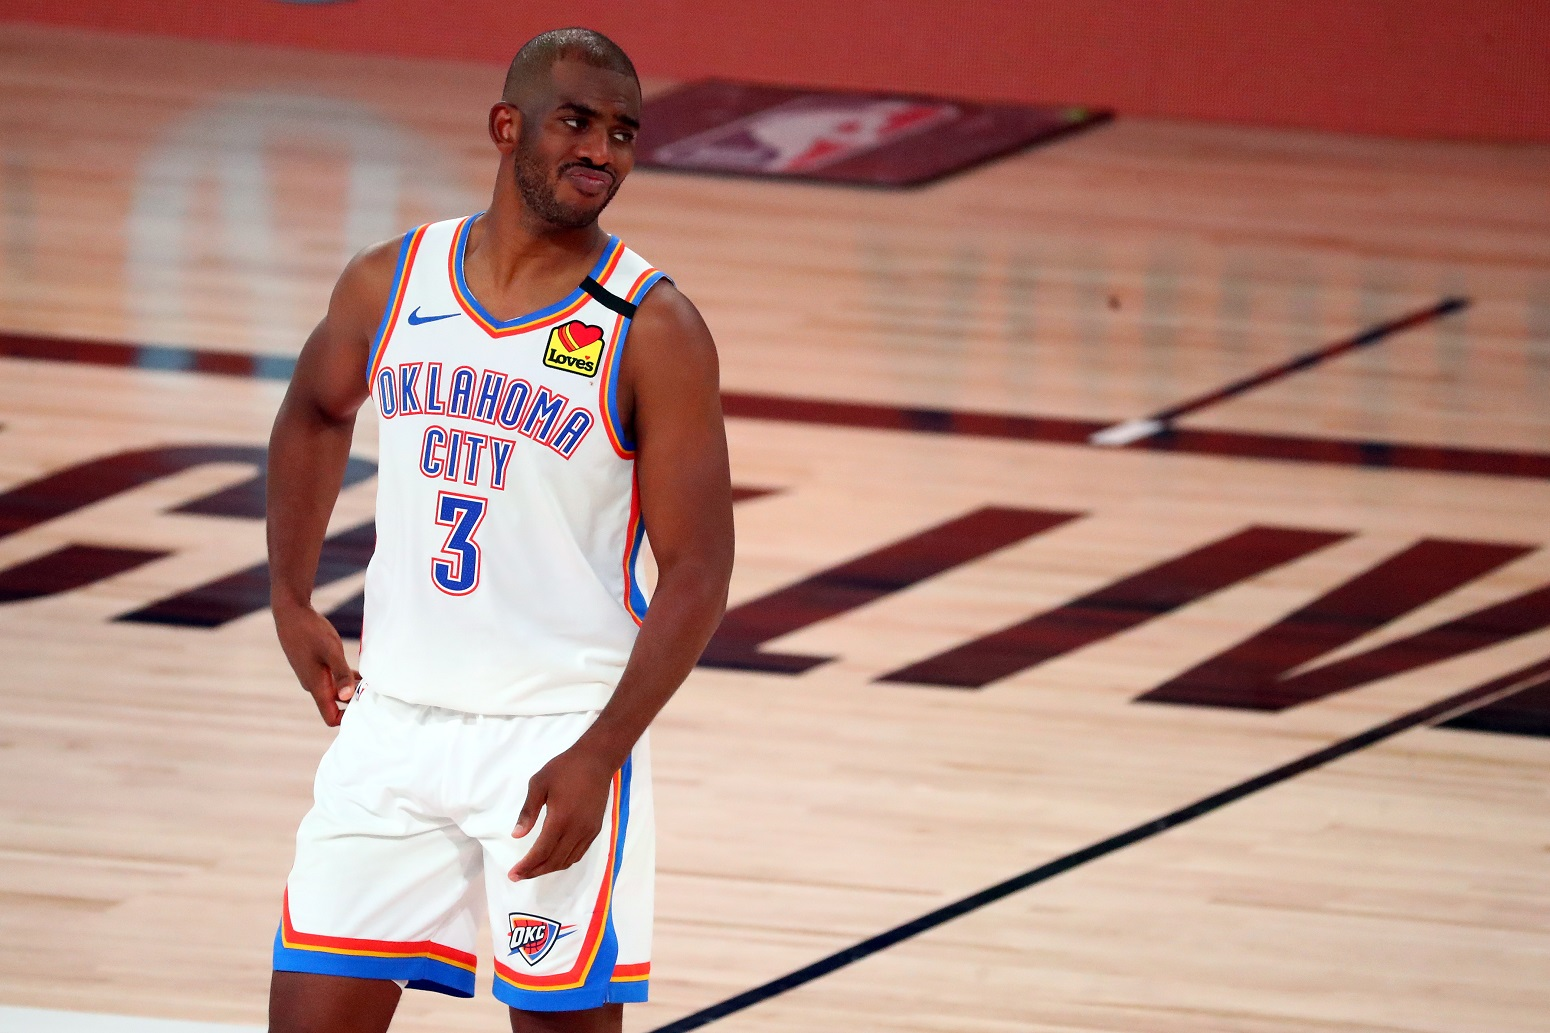 Chris Paul Laid Out His Only Trade Demand To Any Interested Team